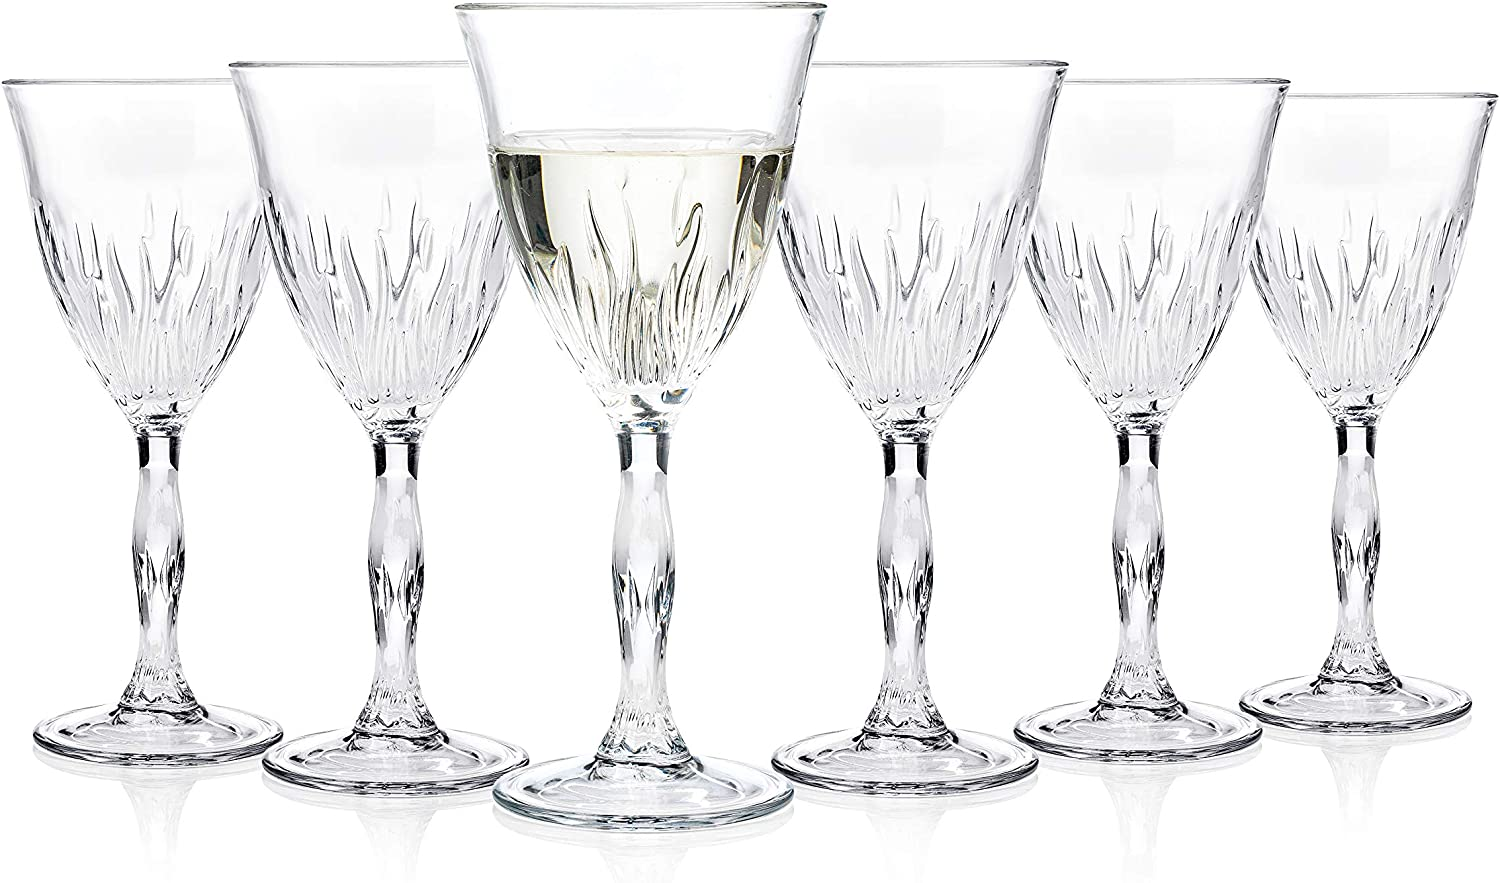 Rcr 24844020006 Fire Crystal Wine Glasses 200 Ml Set Of 6 Amazon Co Uk Kitchen Home